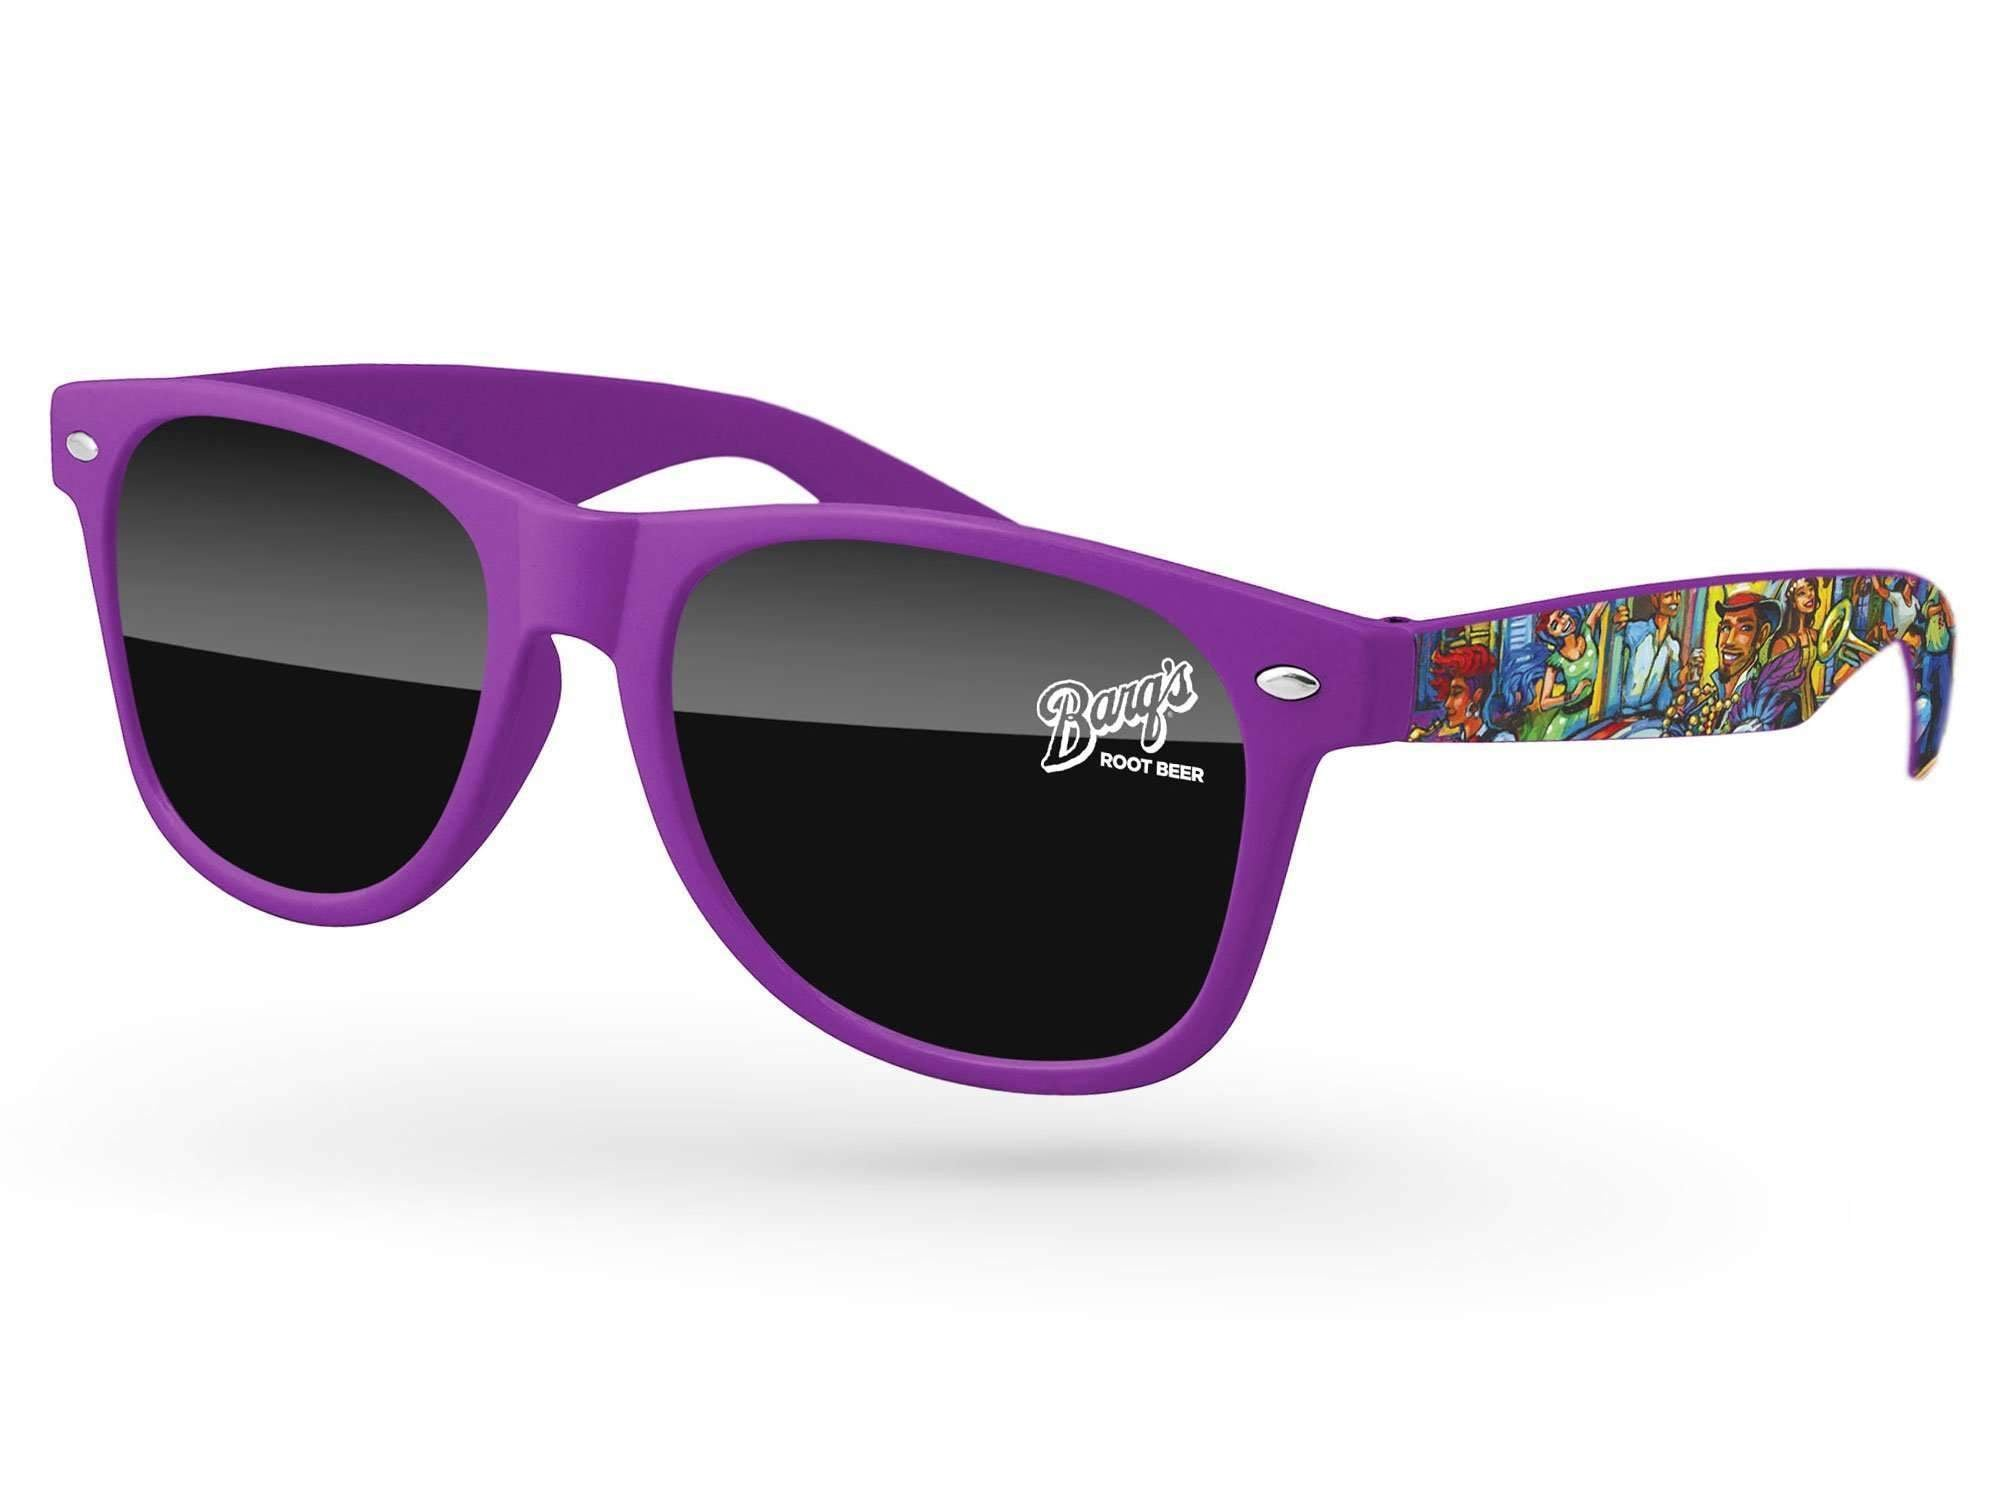 RD550 - Retro Promotional Sunglasses w/ 1-color lens imprint & full-color arms heat transfer